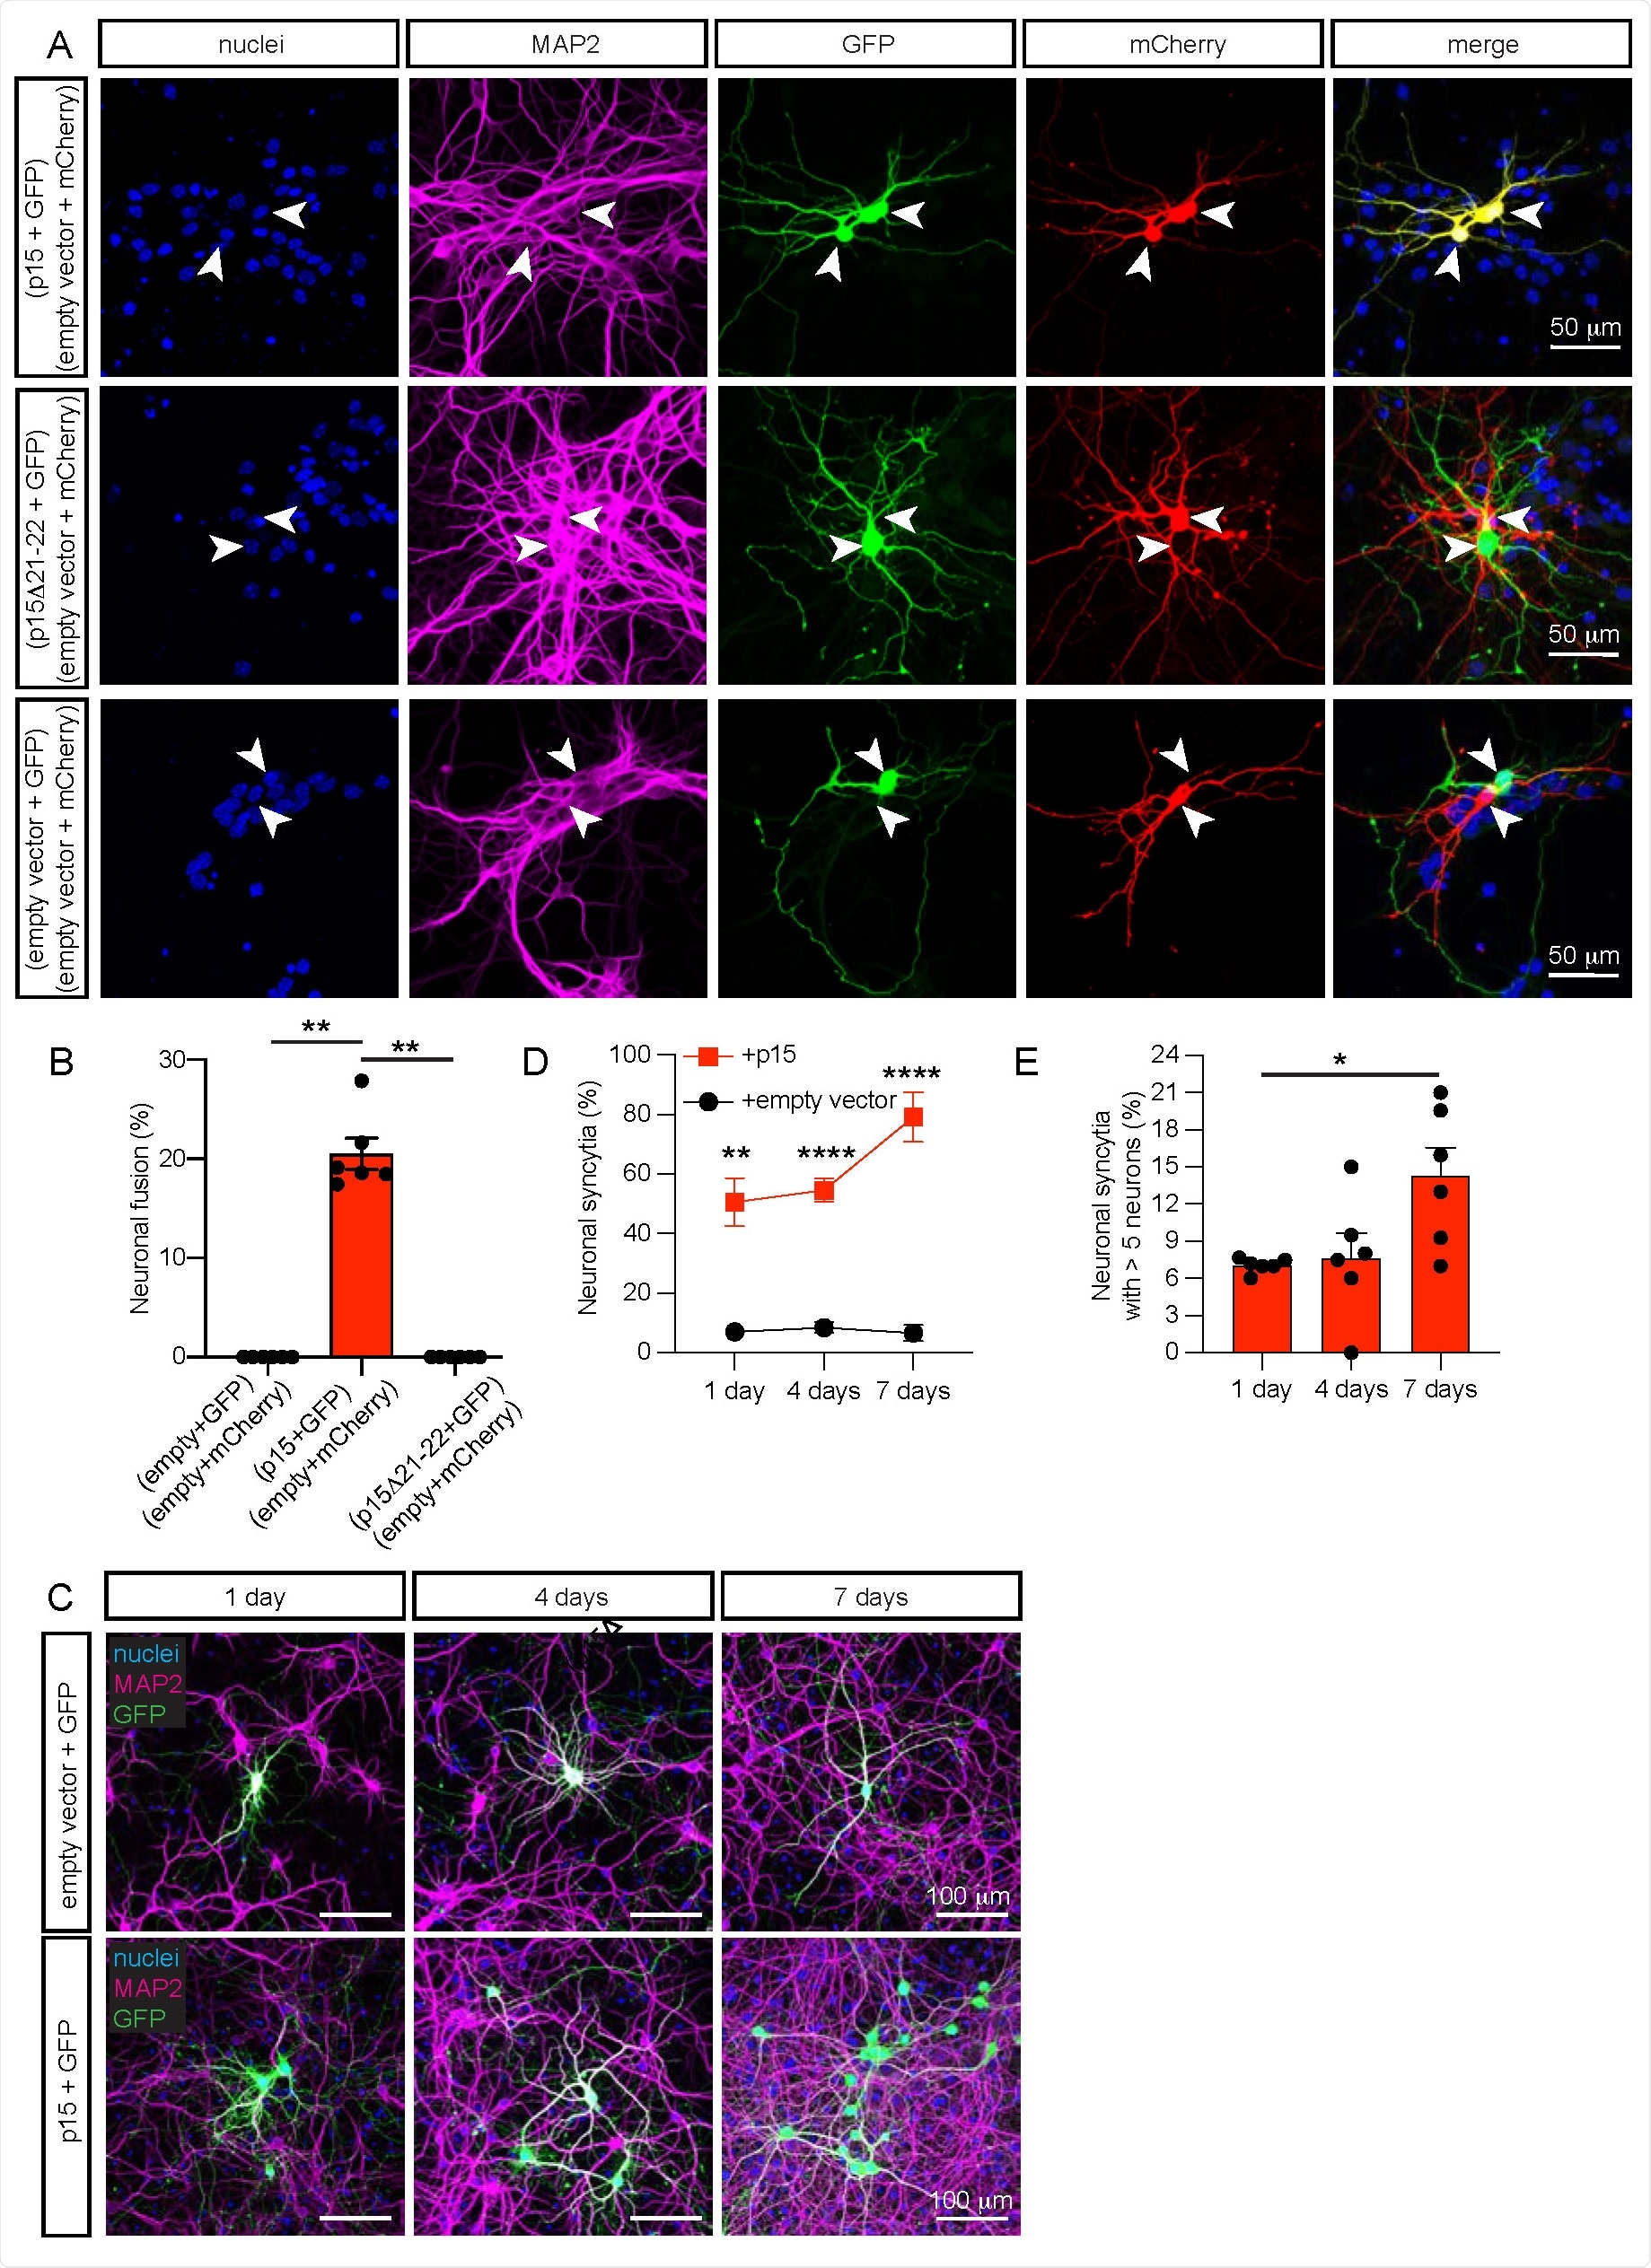 Expression of p15 induces fusion of murine neurons in culture. a, Representative images of fused neurons (upper row panels) identifiable with GFP (green) and mCherry (red) fluorescence appearing simultaneously in adjacent neurons (yellow in the merge panel), or non-fused control neurons (middle and lower row panels) with green and red fluorescence in adjacent neurons. Two populations of hippocampal neurons expressing either p15 and GFP, or empty vector and mCherry were cultured together for 7 days (7 DIV). In control conditions, p15 was substituted by the non-fusogenic mutant p15Δ21-22, or by the empty vector. Immunocytochemistry for nuclei (blue), neuronal MAP2 (magenta), GFP (green) and mCherry (red). b, Quantification of neuronal fusion as the percentage of transfected neurons that fuse (yellow) when two neurons are in proximity (£ 200 µm). c, Representative images of neurons illustrating the propagation of fusion over time (upper panels). Hippocampal neurons were co-transfected at 7-10 DIV with p15 and GFP (or empty vector and GFP in control, lower panels), and were cultured for 1 day, 4 days or 7 days. Immunocytochemistry for nuclei (blue), MAP2 (magenta) and GFP (green). d, Quantification of neuronal syncytia as the percentage of interconnected neurons within a distance of £ 200 µm. e, Quantification of the average number of interconnected neurons per syncytium containing more than 5 neurons. Data in b are displayed as mean ± SEM, n > 150 neurons analyzed in 6 independent dishes from > 2 cultures, One-way ANOVA Kruskal-Wallis test followed by Dunn's post hoc test in e comparing all groups to empty vector control. Data in d and e are displayed as mean ± SEM, n > 350 neurons analyzed in > 4 independent dishes from 4 cultures. Two-way ANOVA in d followed by Geisser-Greenhouse correction and the Šidák post hoc test comparing treatments (+ empty vector vs + p15) within each condition (days in culture). One-way ANOVA Kruskal-Wallis test followed by Dunn's post hoc t